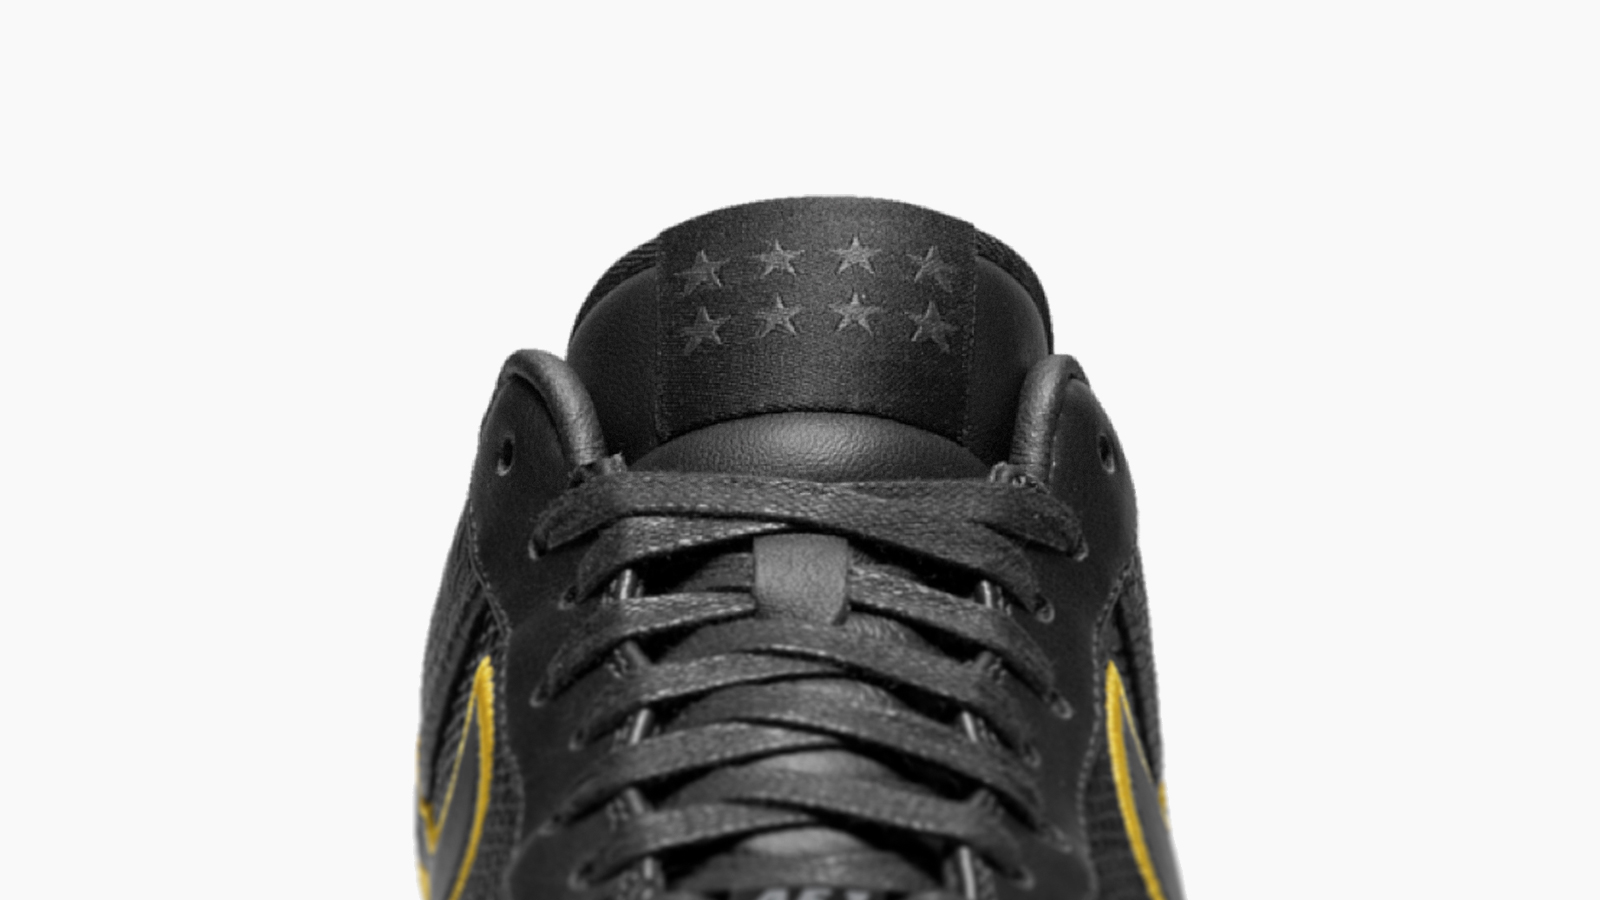 Kobe bryant black mamba air force 1 4